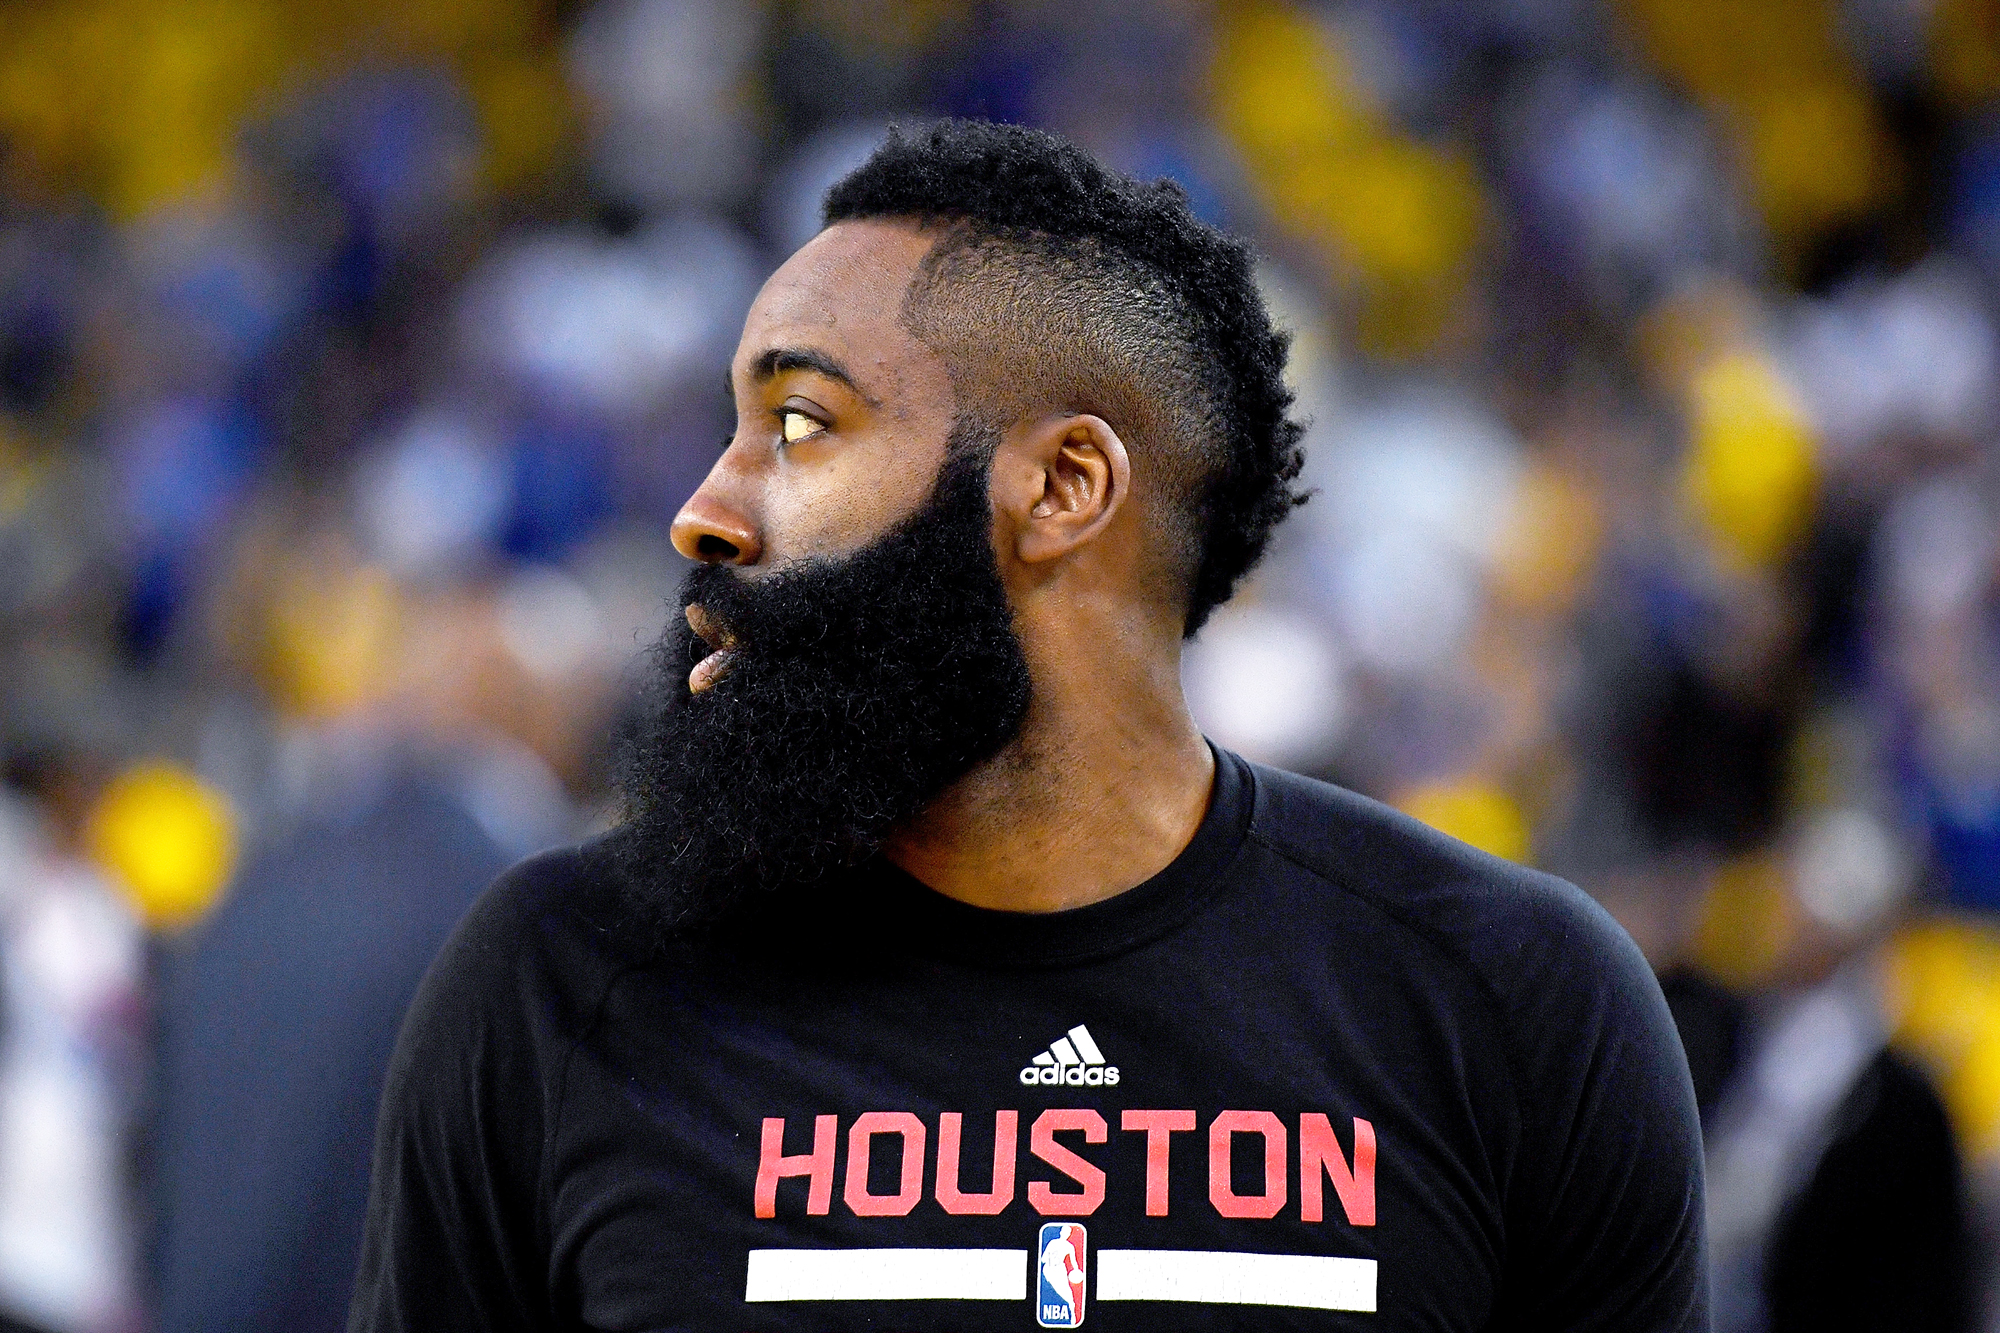 James Harden #13 of the Houston Rockets warms up prior to playing the Golden State Warriors in Game One of the Western Conference Quarterfinals during the 2016 NBA Playoffs at ORACLE Arena on April 16, 2016 in Oakland, California.